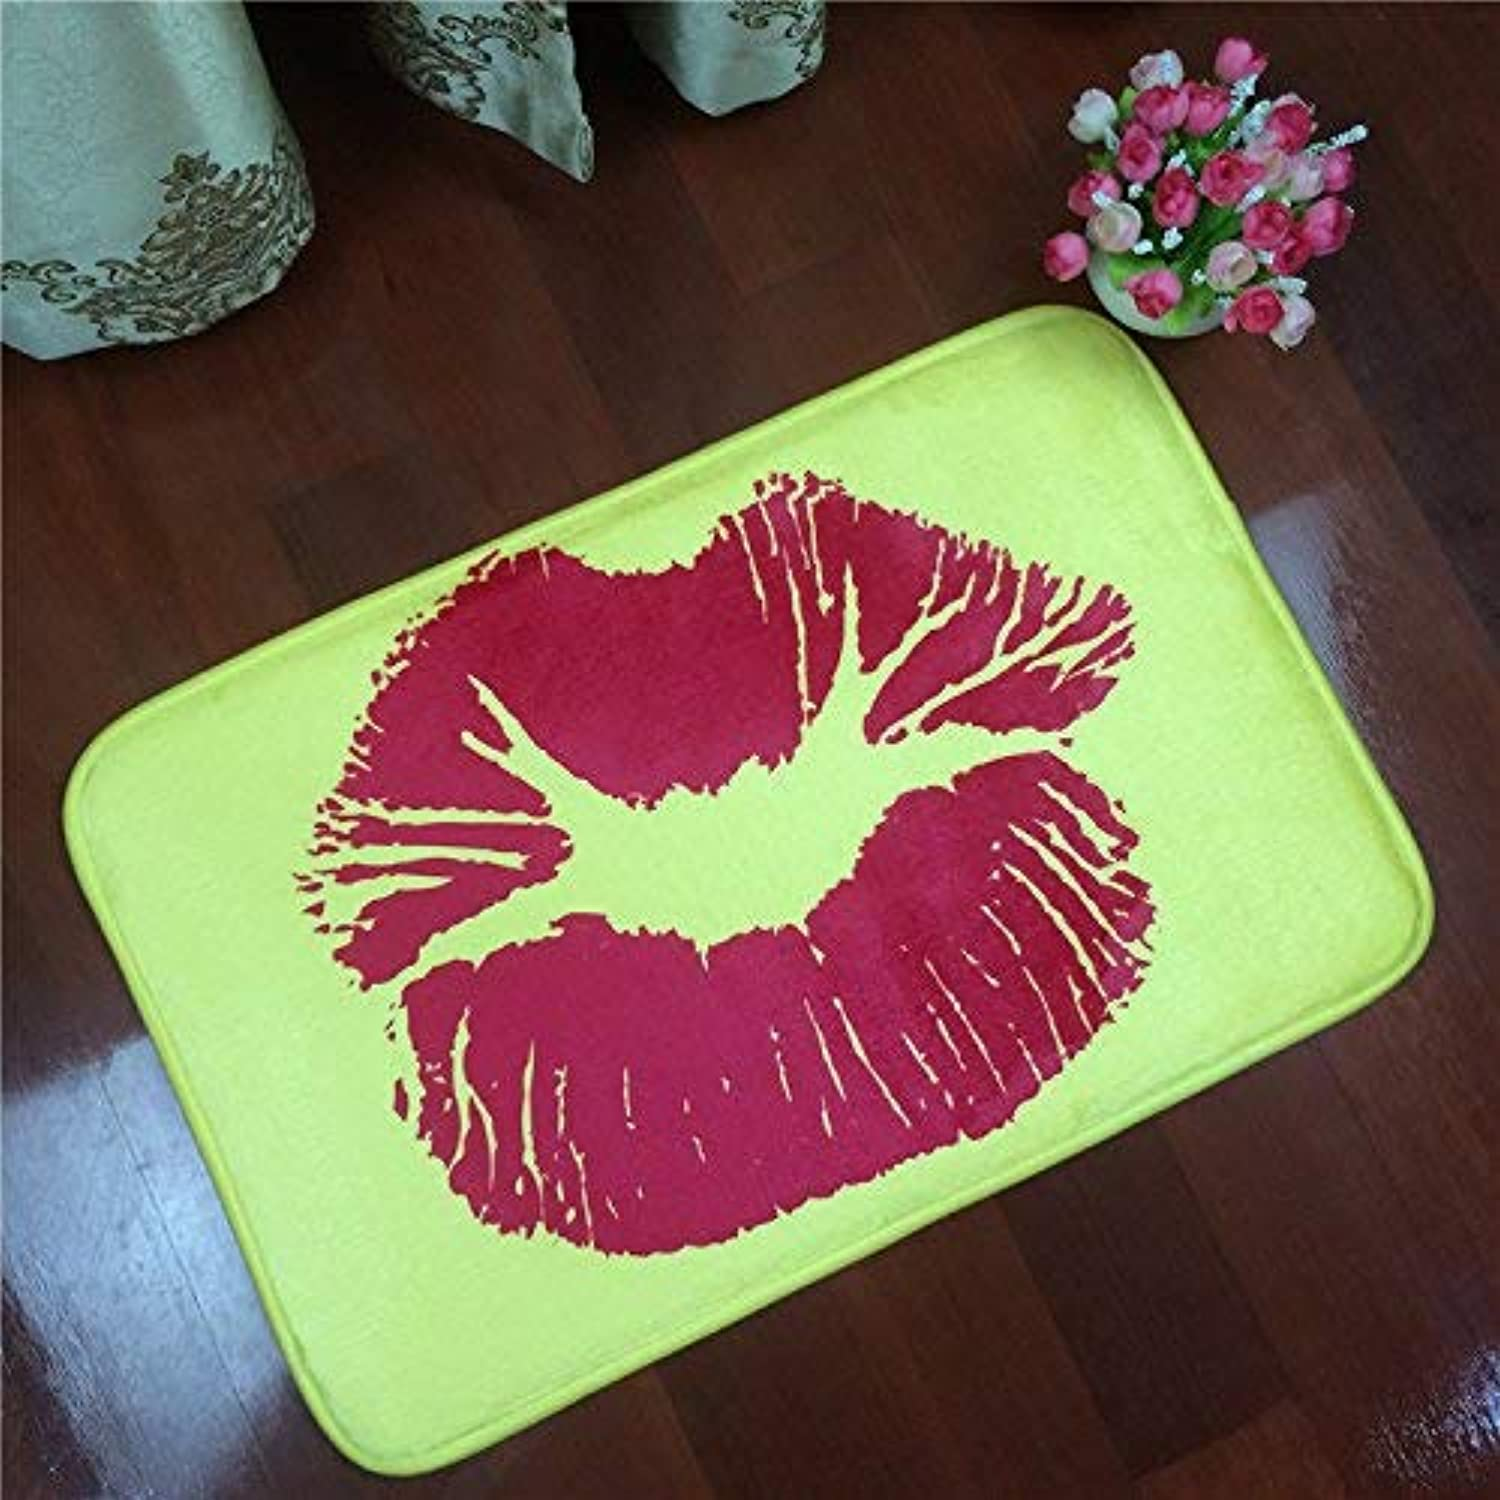 Royare Home Decorations mat Tkopainsde 40  60Cm 50  80Cm Non-Slip 3D Printed Doormats Sexy Red Lips Printing Bath Mat Bedroom Bathroom Mat Rugs,White,400Mmx600Mm